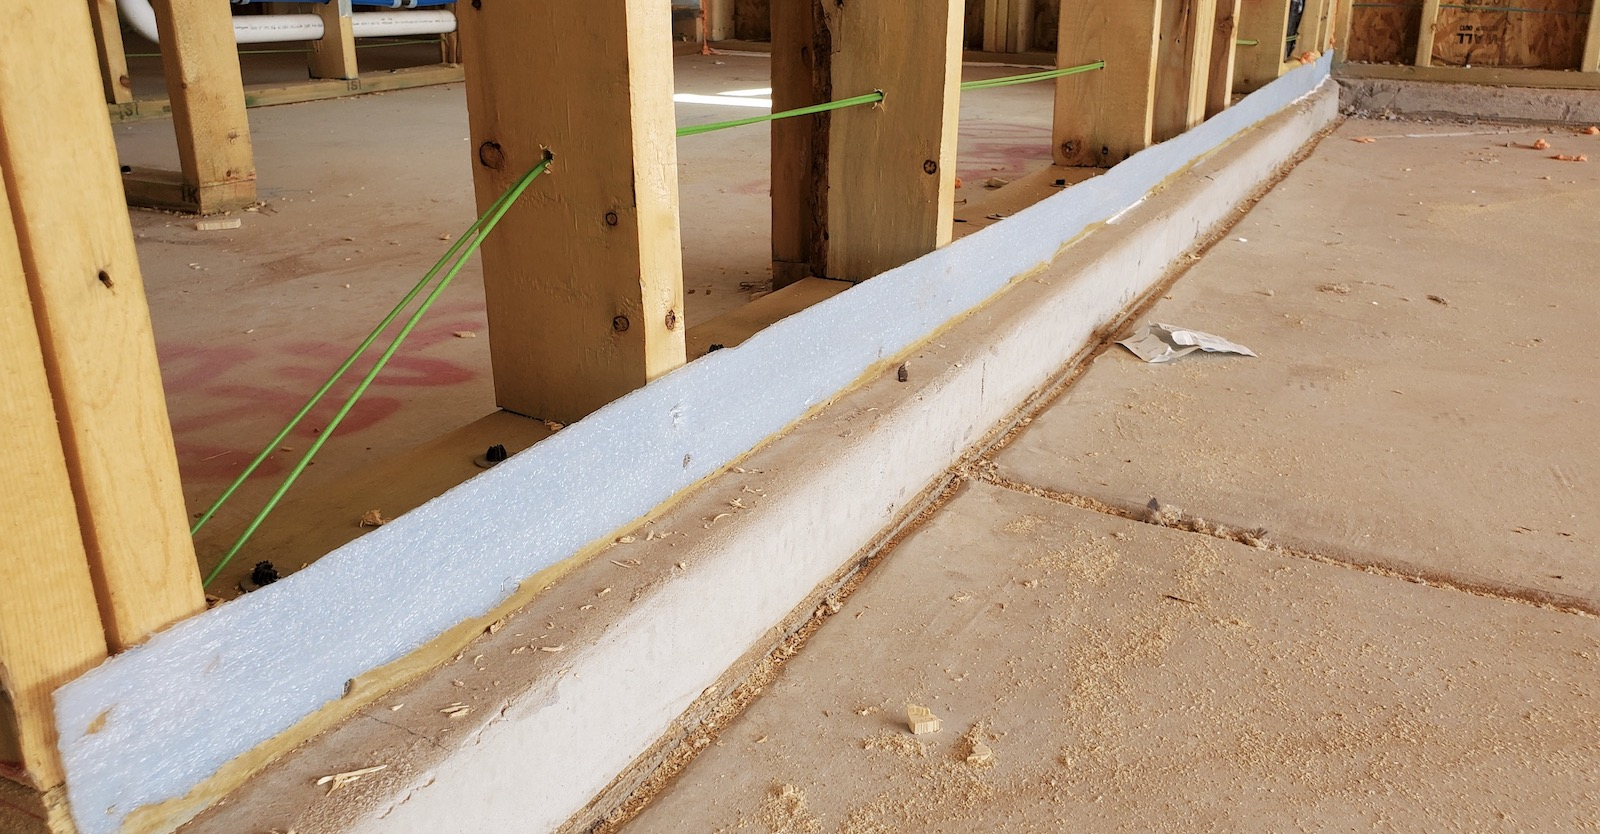 Sill plate gaskets help prevent moisture in walls.